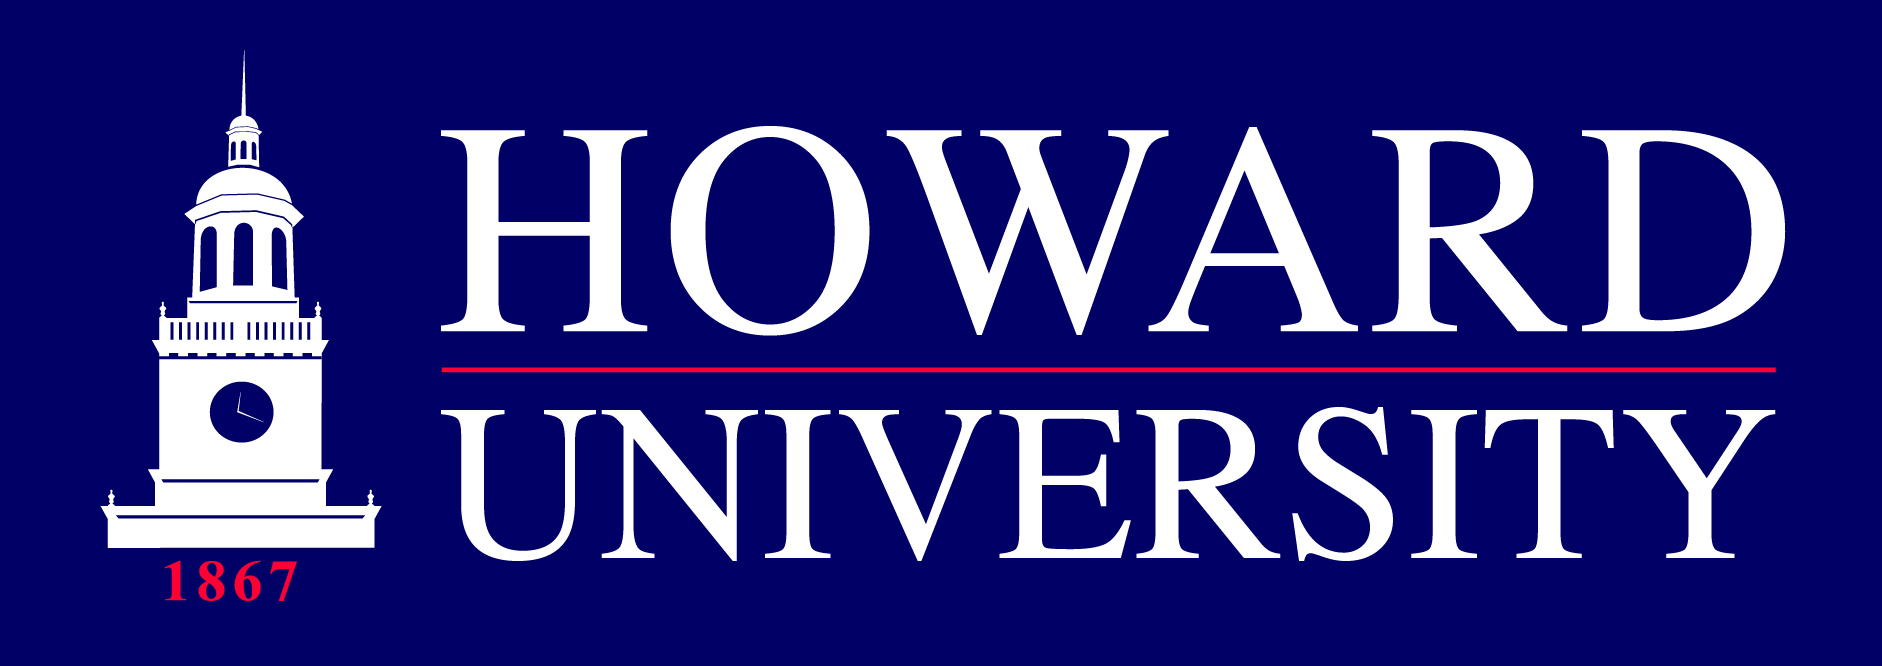 howard_university_web_logo